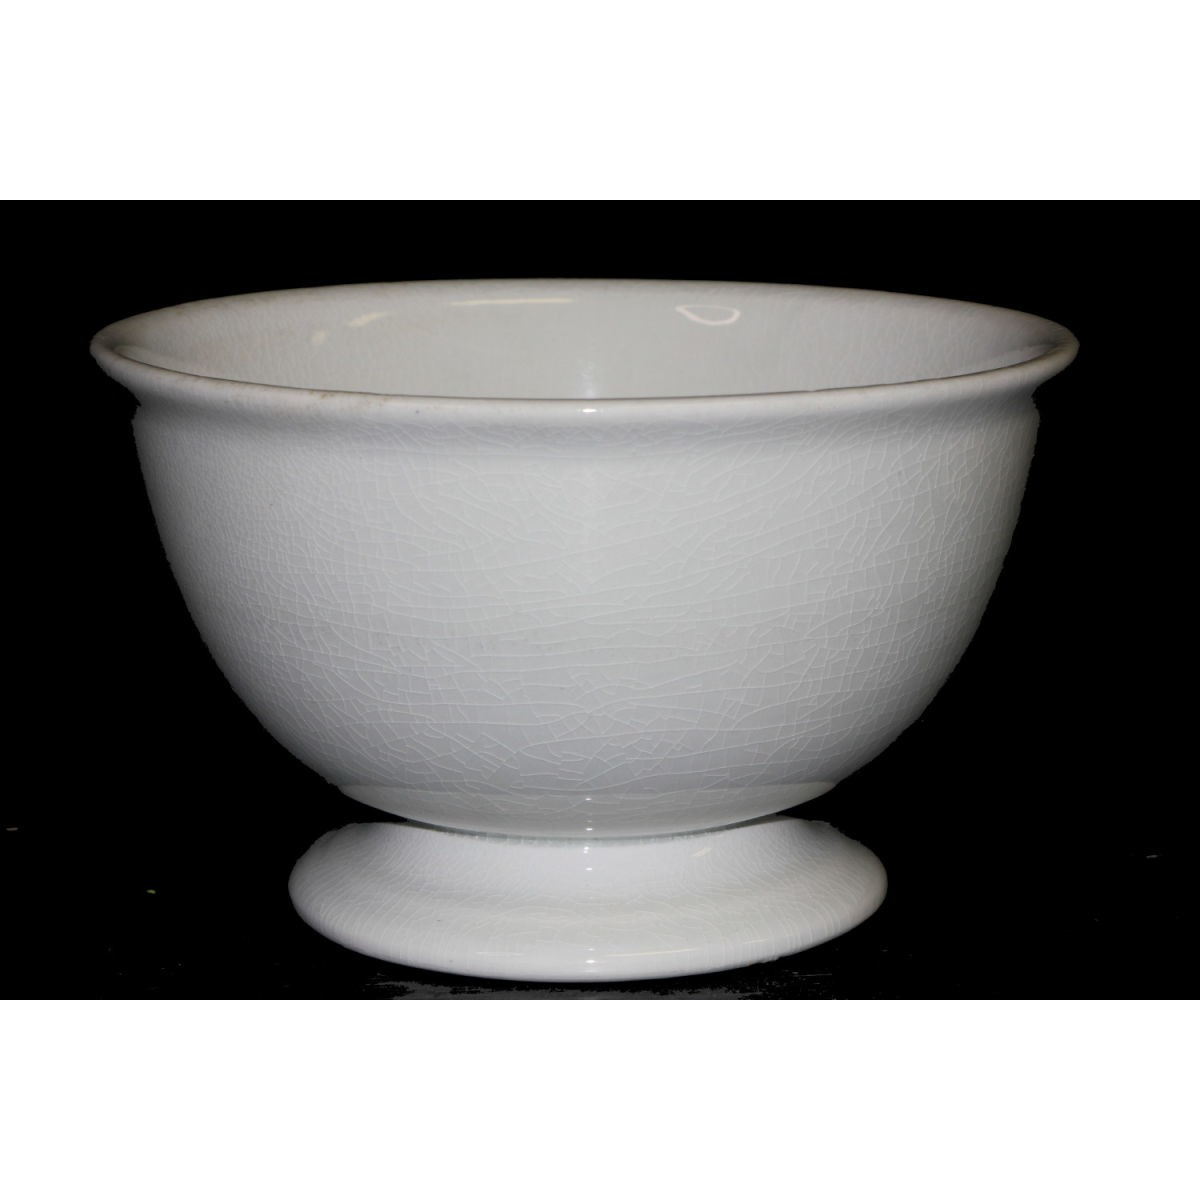 "Slightly Creamy White Meakin 9"" Ironstone Punch Bowl"